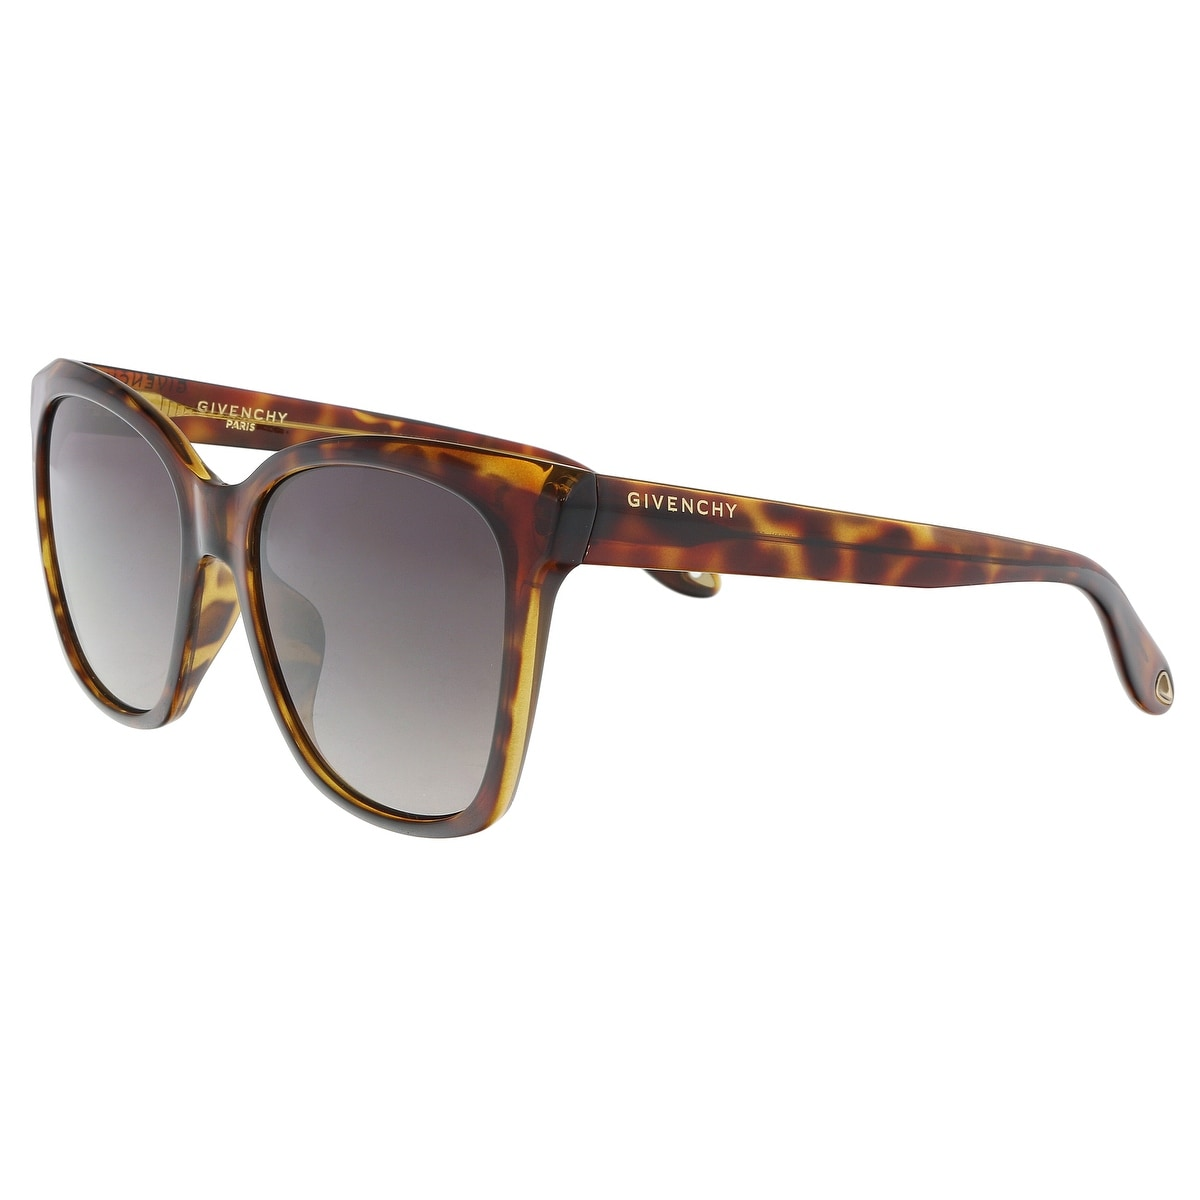 d6327ab2c6e0 Shop Givenchy GV7069S 0086 Dark Havana Square Sunglasses - 55-18-145 ...